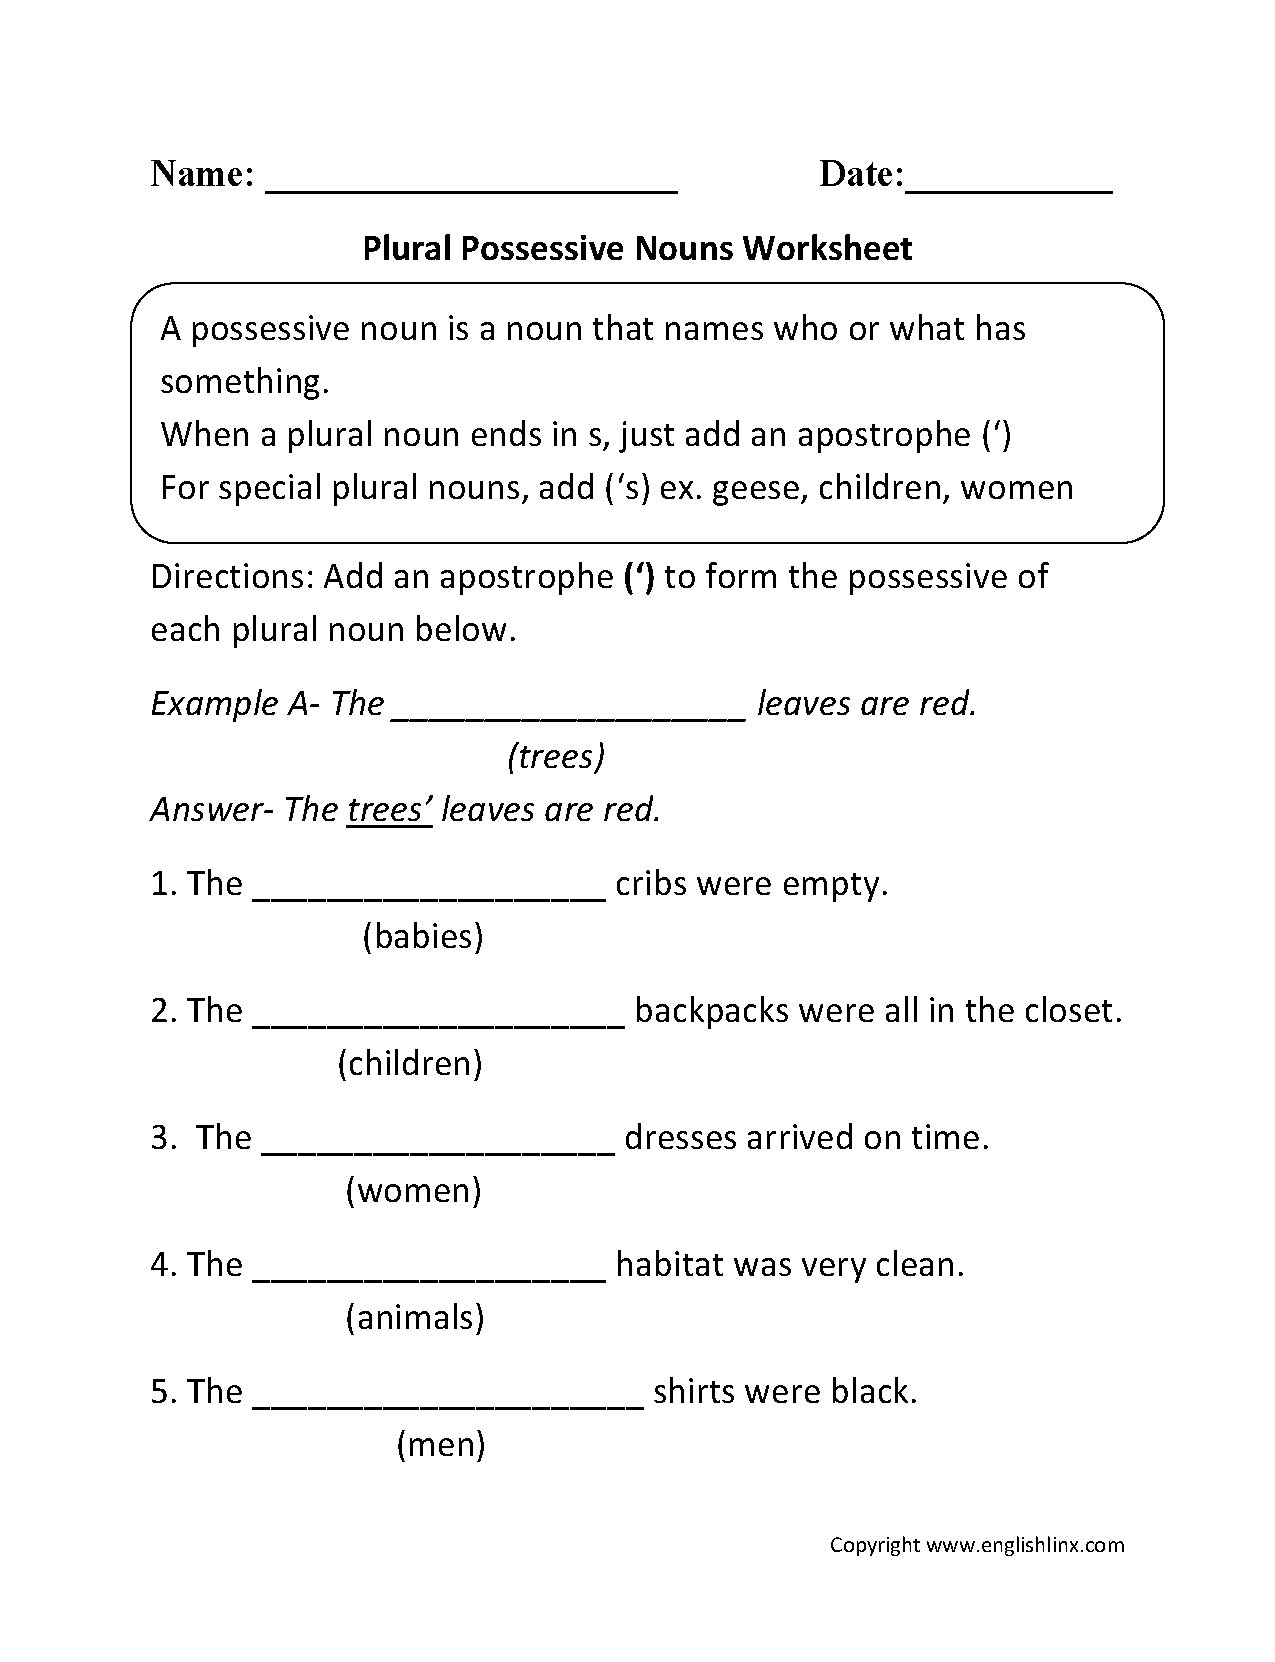 Aldiablosus  Gorgeous Nouns Worksheets  Possessive Nouns Worksheets With Hot Possessive Nouns Worksheets With Charming Calculus  Worksheets Also Nouns Worksheet For Kindergarten In Addition Math Worksheets For Nd Graders Printable And At Worksheet As Well As Cell Organelles Worksheet With Answers Additionally Worksheets Spanish From Englishlinxcom With Aldiablosus  Hot Nouns Worksheets  Possessive Nouns Worksheets With Charming Possessive Nouns Worksheets And Gorgeous Calculus  Worksheets Also Nouns Worksheet For Kindergarten In Addition Math Worksheets For Nd Graders Printable From Englishlinxcom